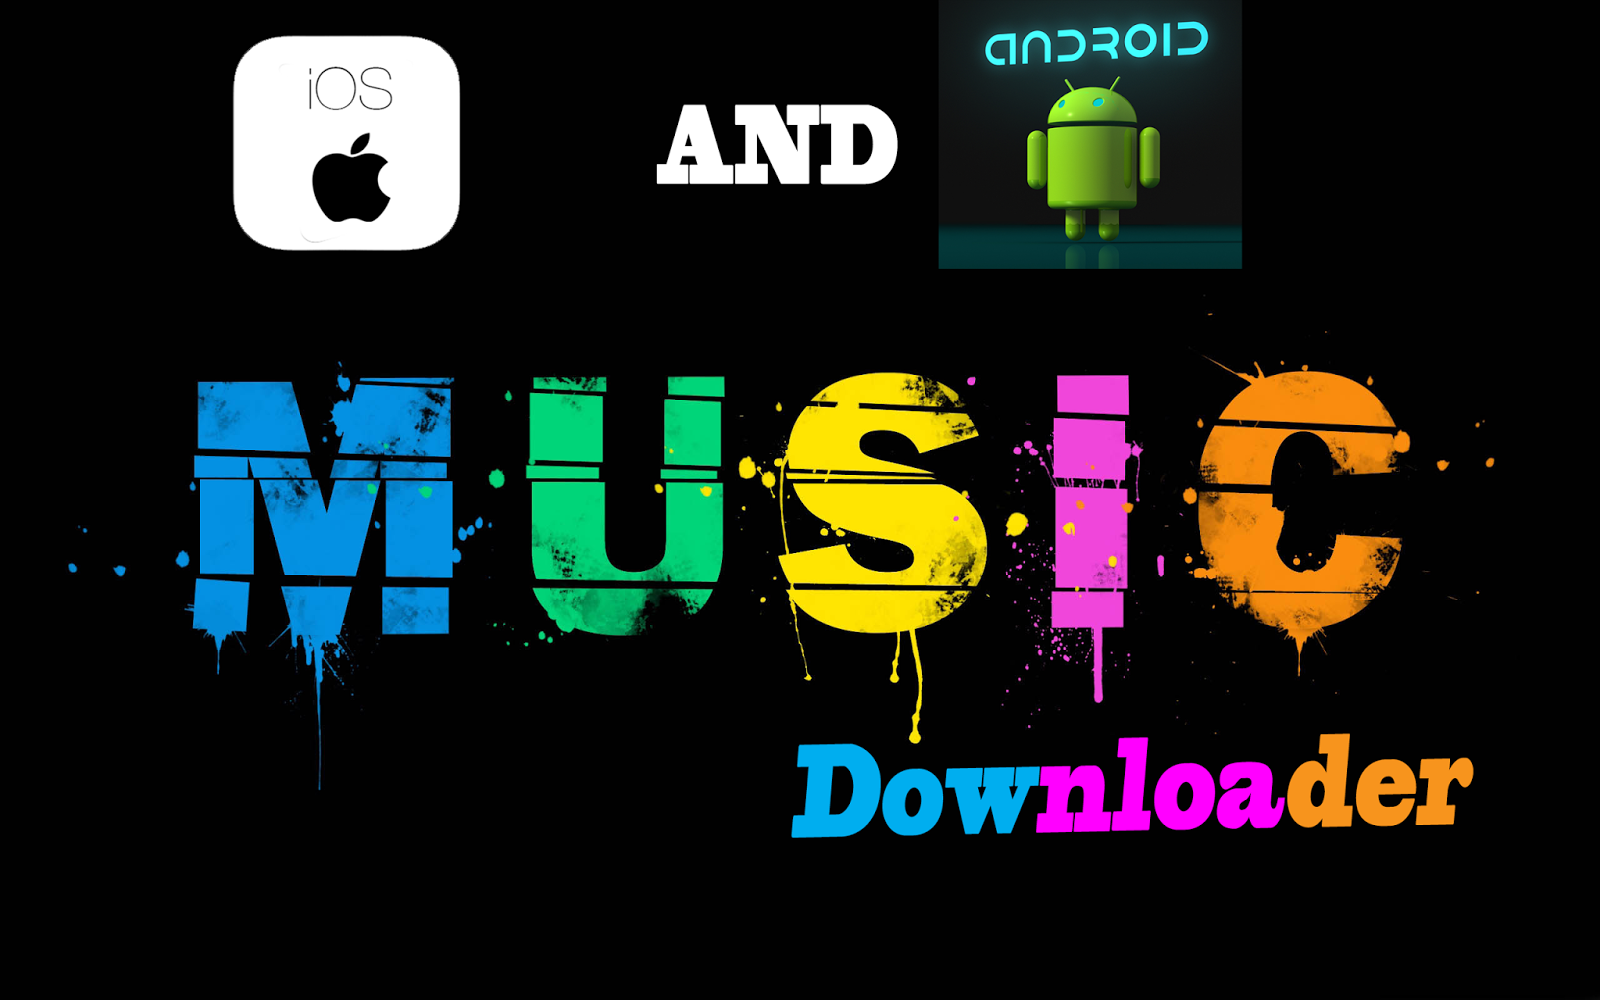 Phone Download Music Directly To Android Phone ipenywis best apps for download music android and ios free if you want to directly your or phone while on wifi connection cellular data so in this p